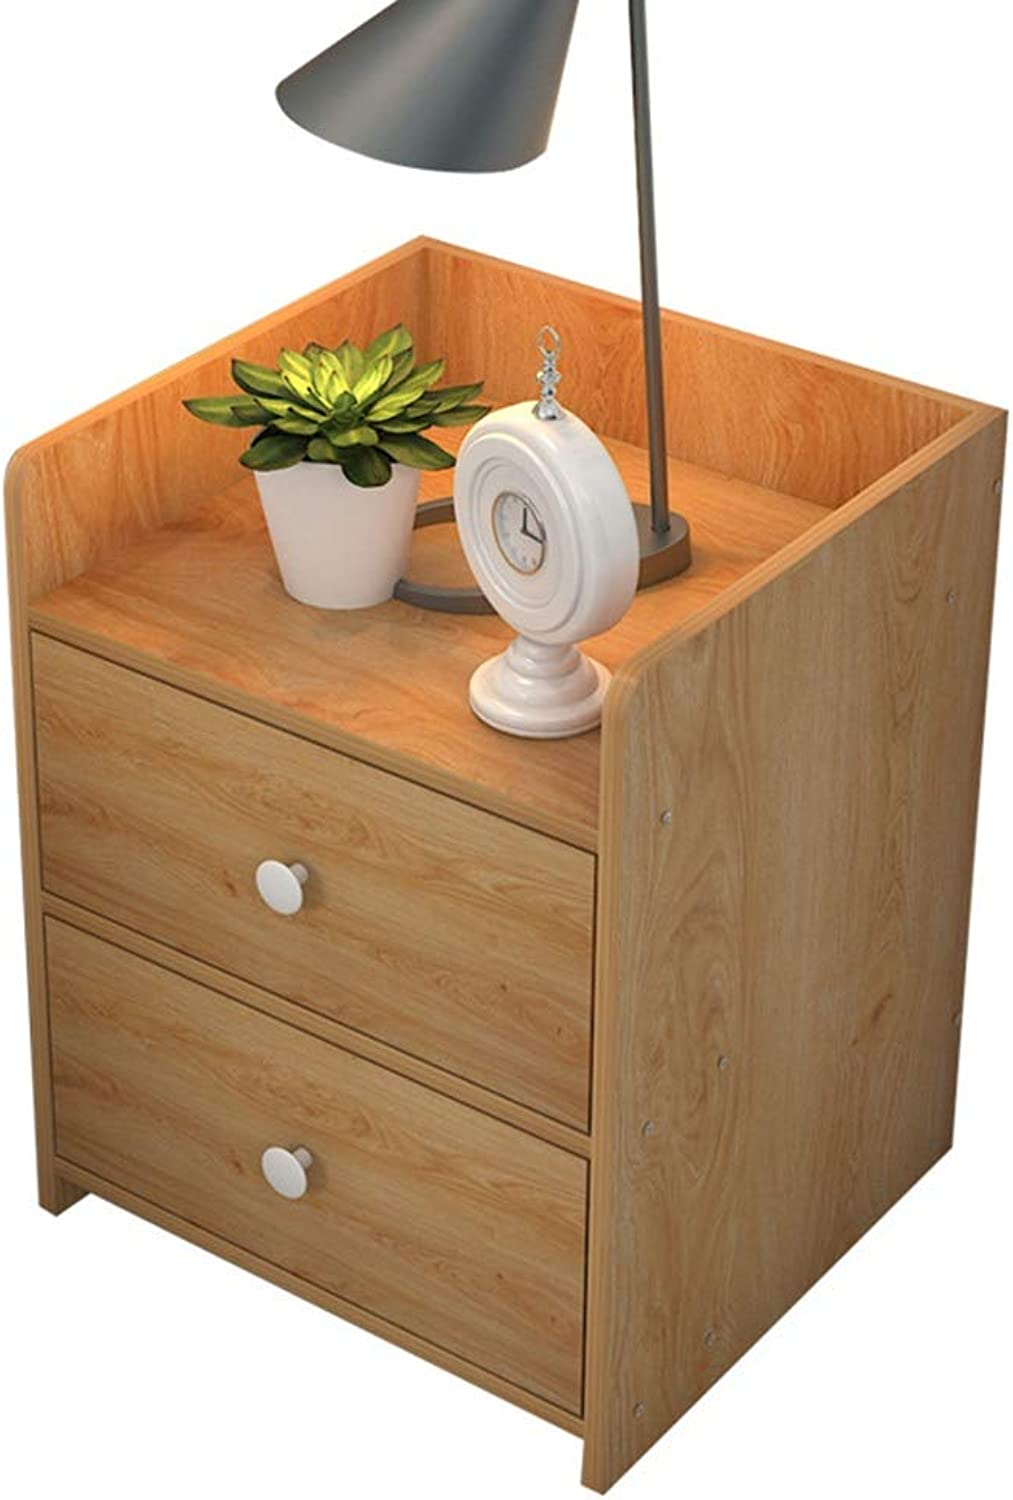 Sububblepper Bedside Table Simple Small Cabinet Storage Cabinet Bedroom Side Cabinet Storage Cabinet (color   1)